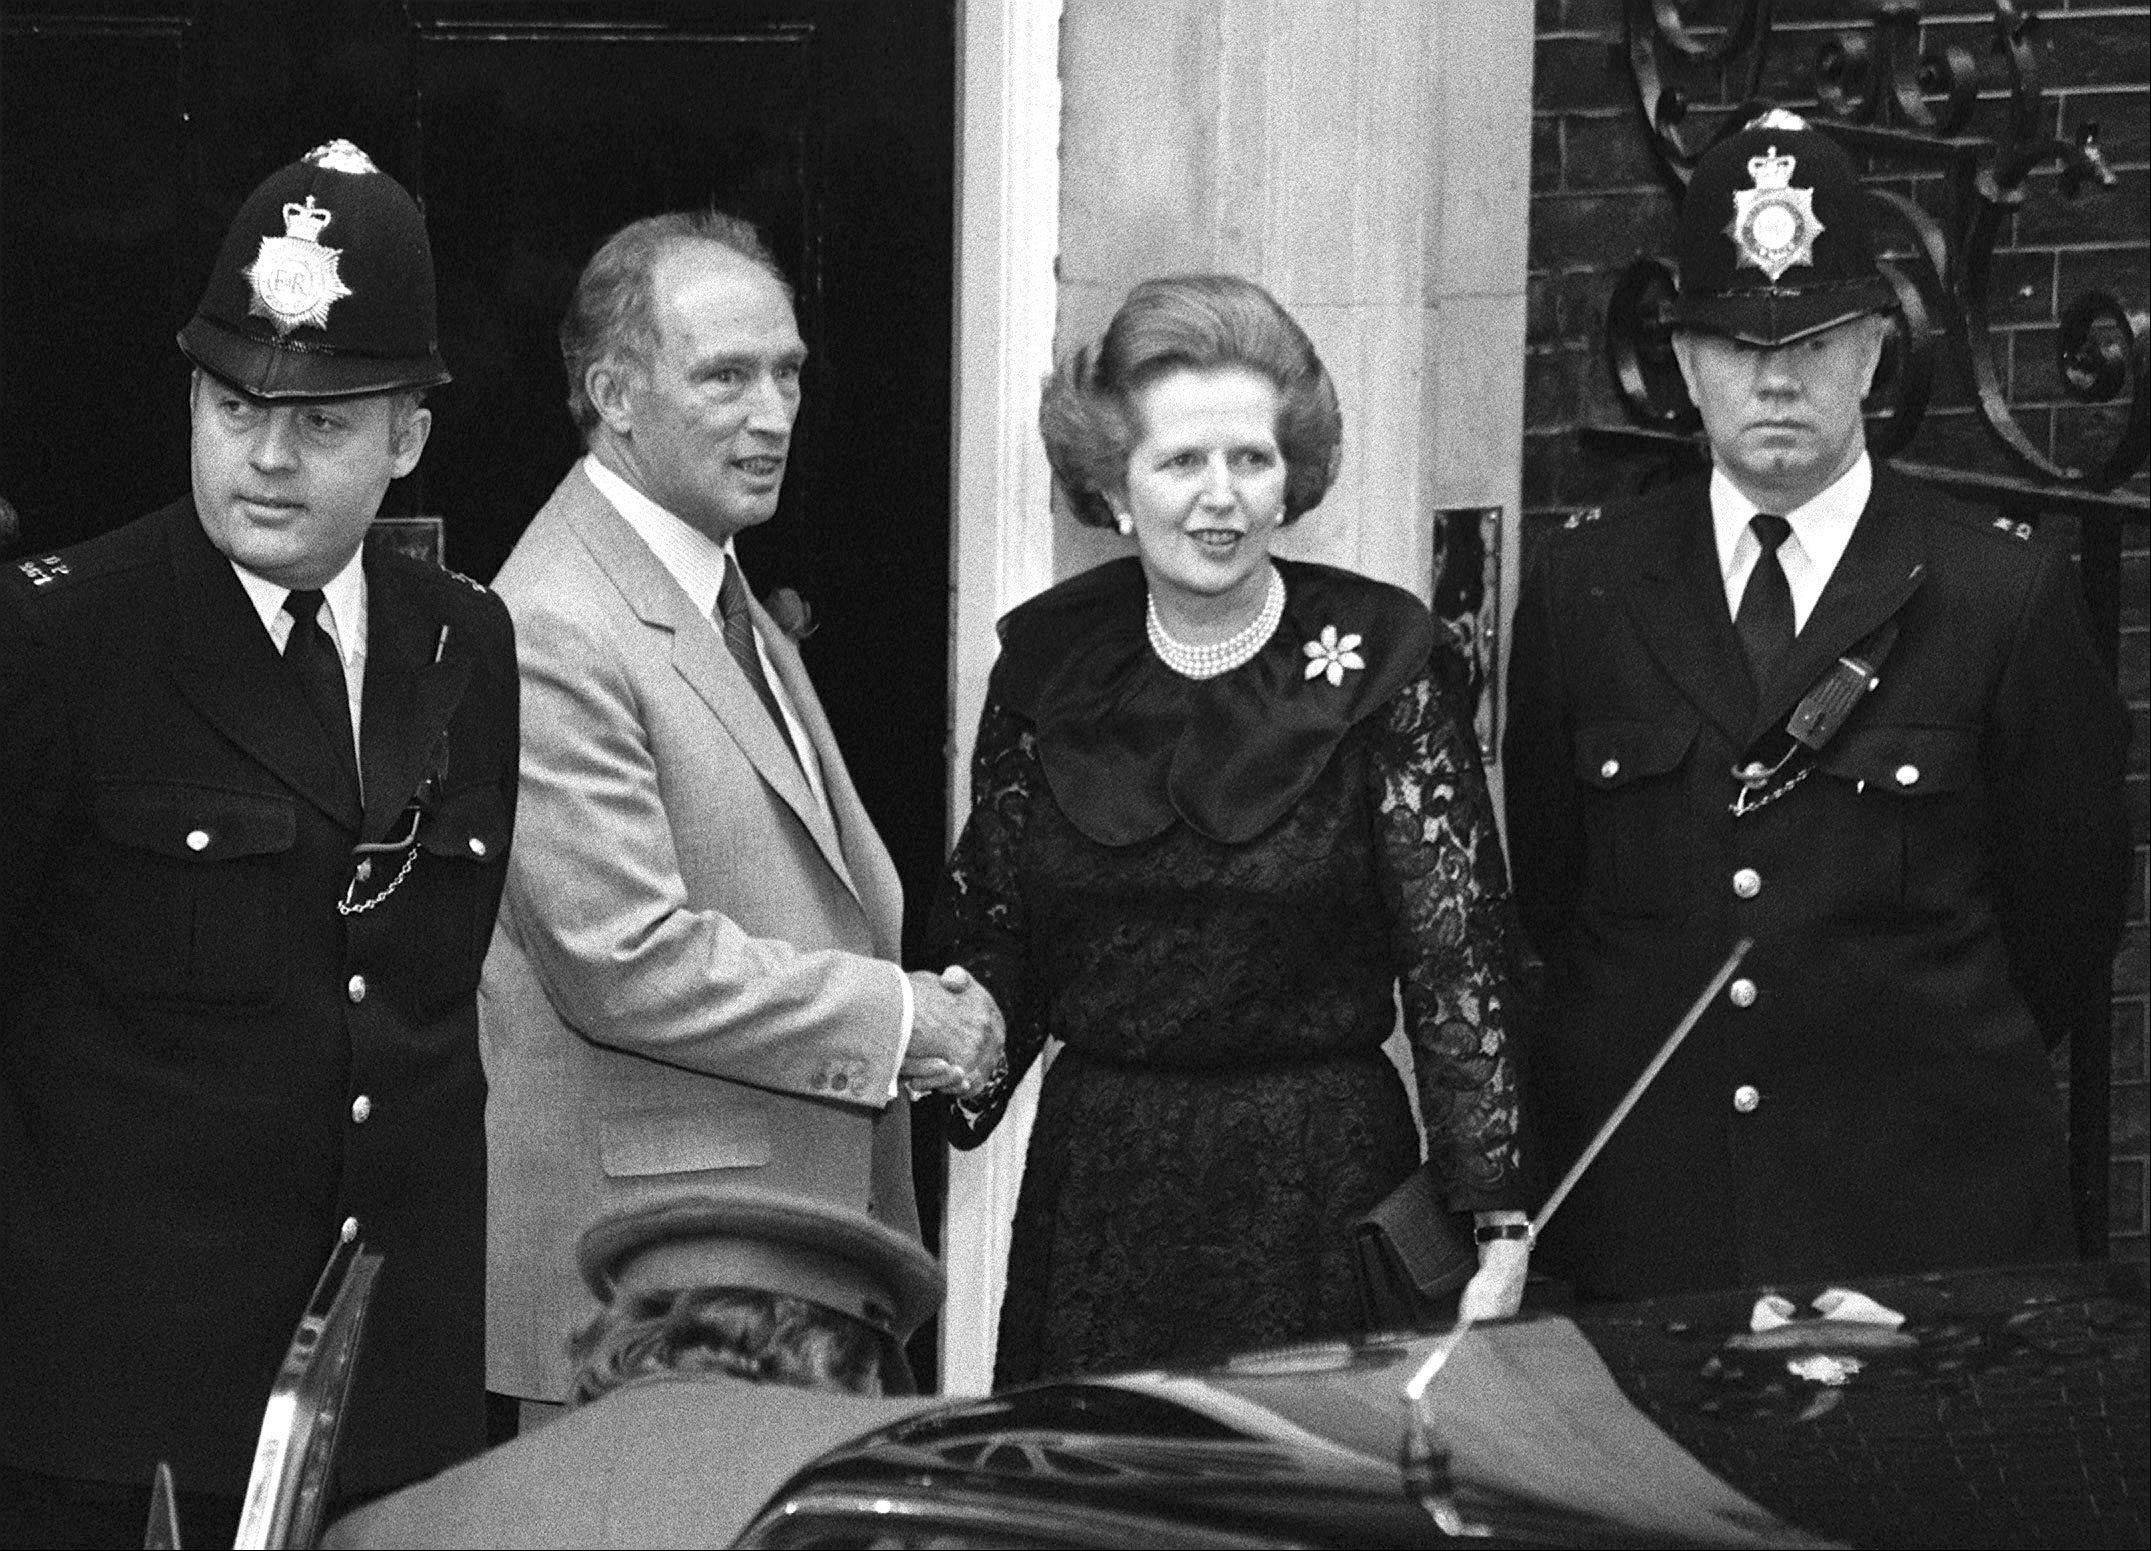 Canadian Prime Minister Pierre Trudeau is greeted by Britain's Prime Minister Margaret Thatcher outside 10 Downing Street, London, on June 7, 1984. Thatchers former spokesman, Tim Bell, said that the former British Prime Minister Margaret Thatcher died Monday, April 8, 2013, of a stroke. She was 87.